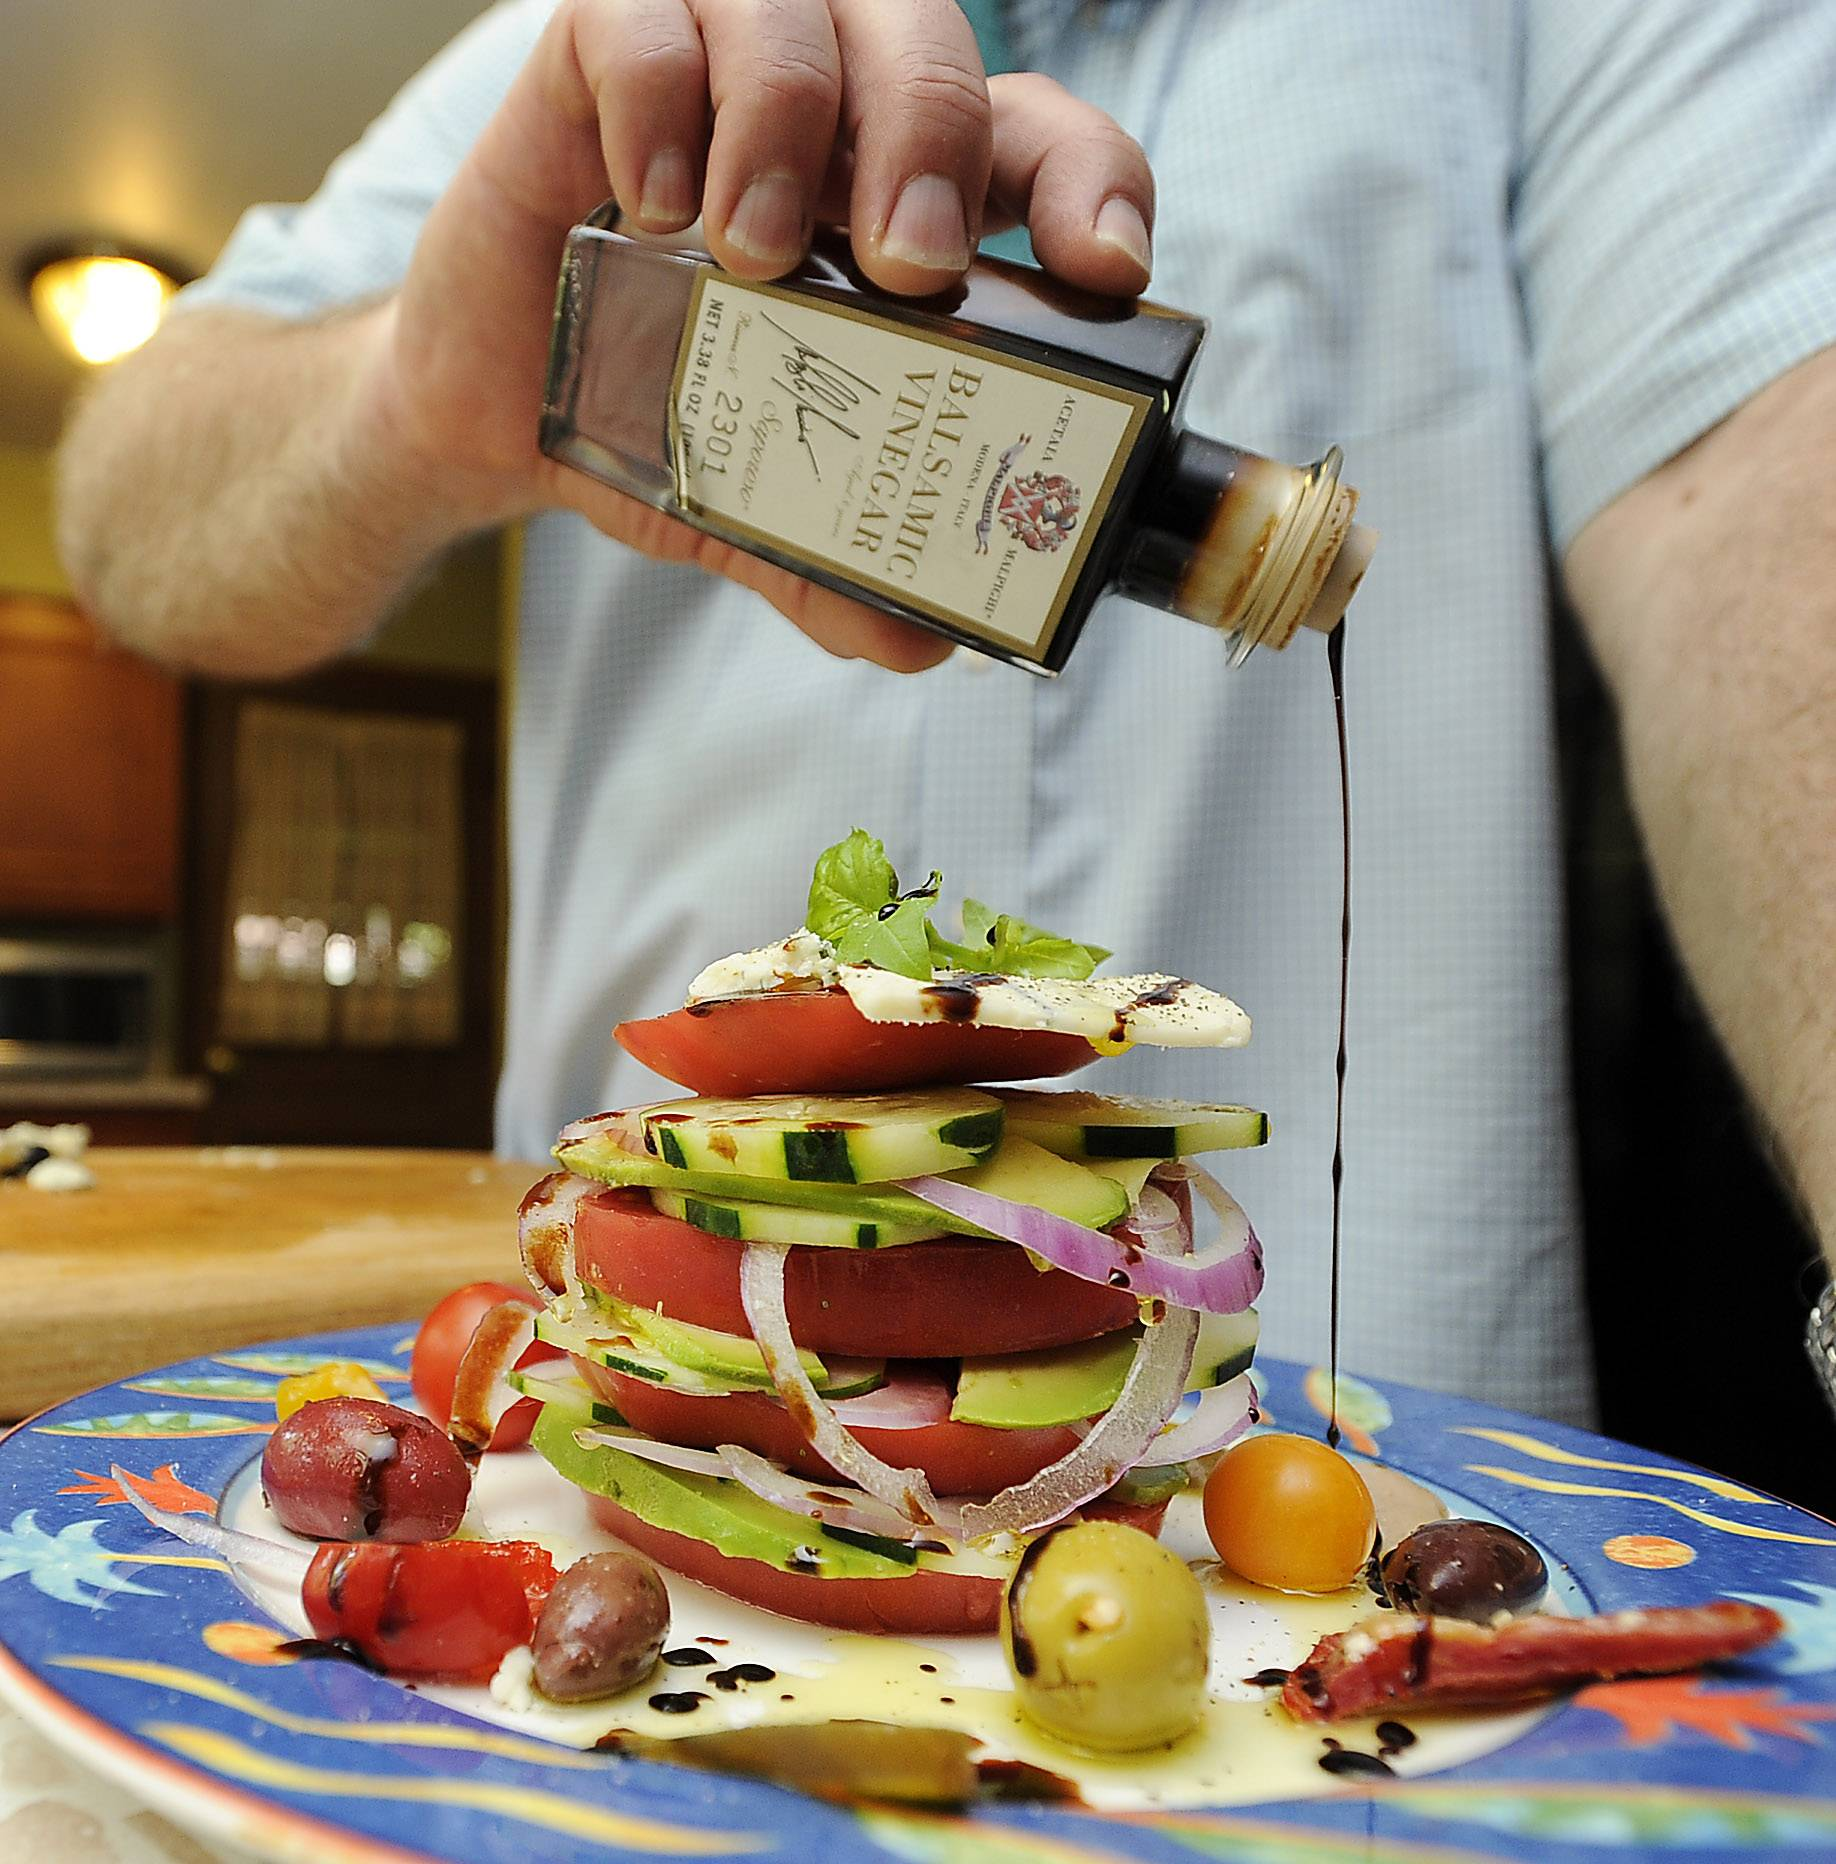 Kevin Kilgore tops off his Fat Stax Tomato Salad with balsamic vinegar.